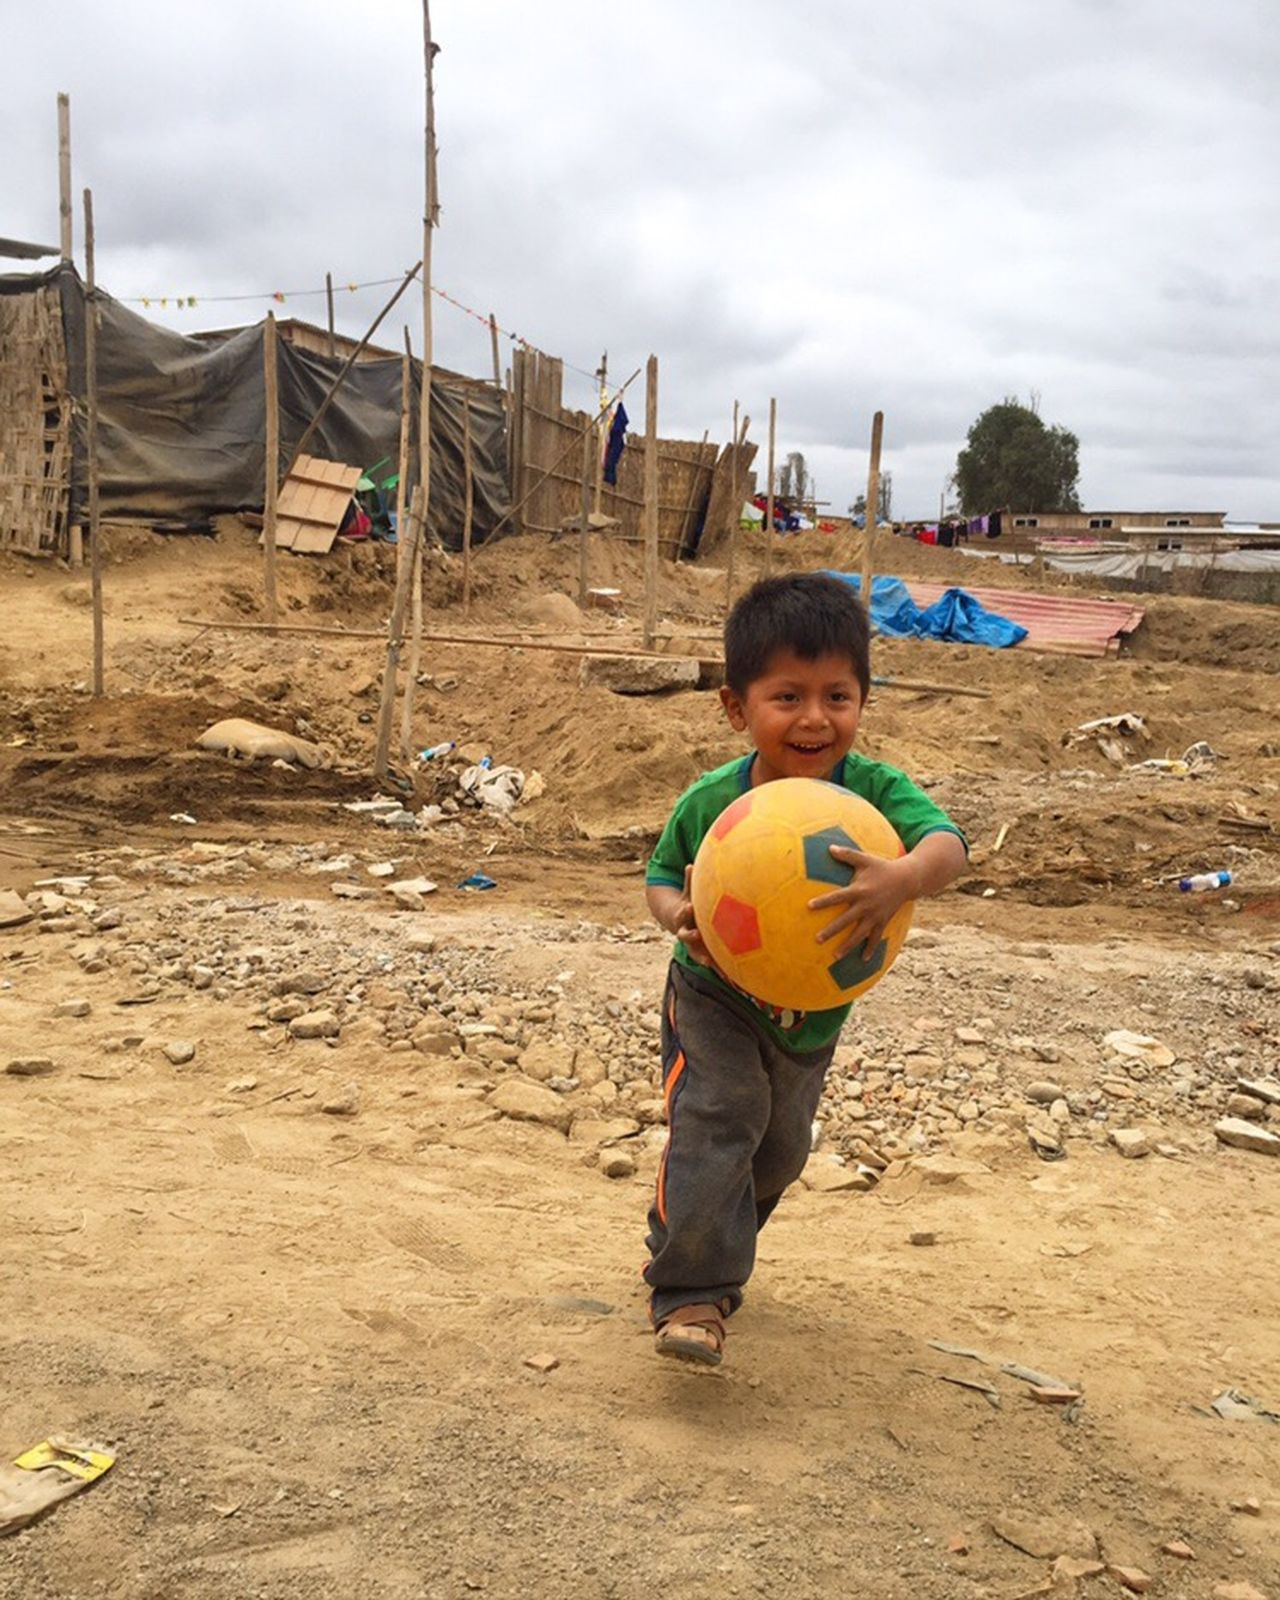 San Vincente, Peru Favela Children Fun Play Inequality The Small Joys Happiness Love First Eyeem Photo